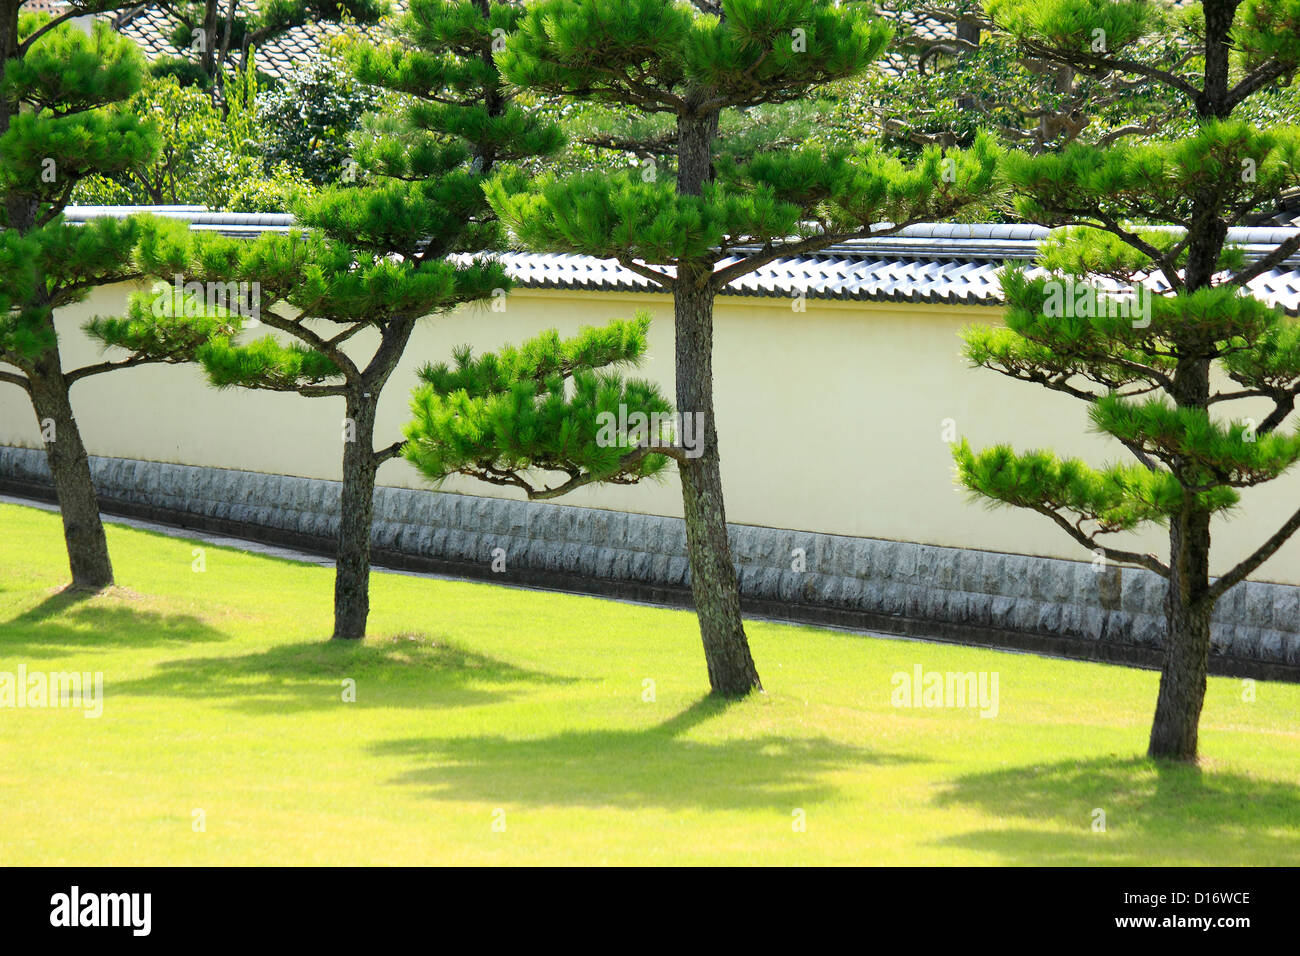 Captivating Garden With Pine Trees And Japanese Traditional Roofed Stone Wall, Nara  Prefecture